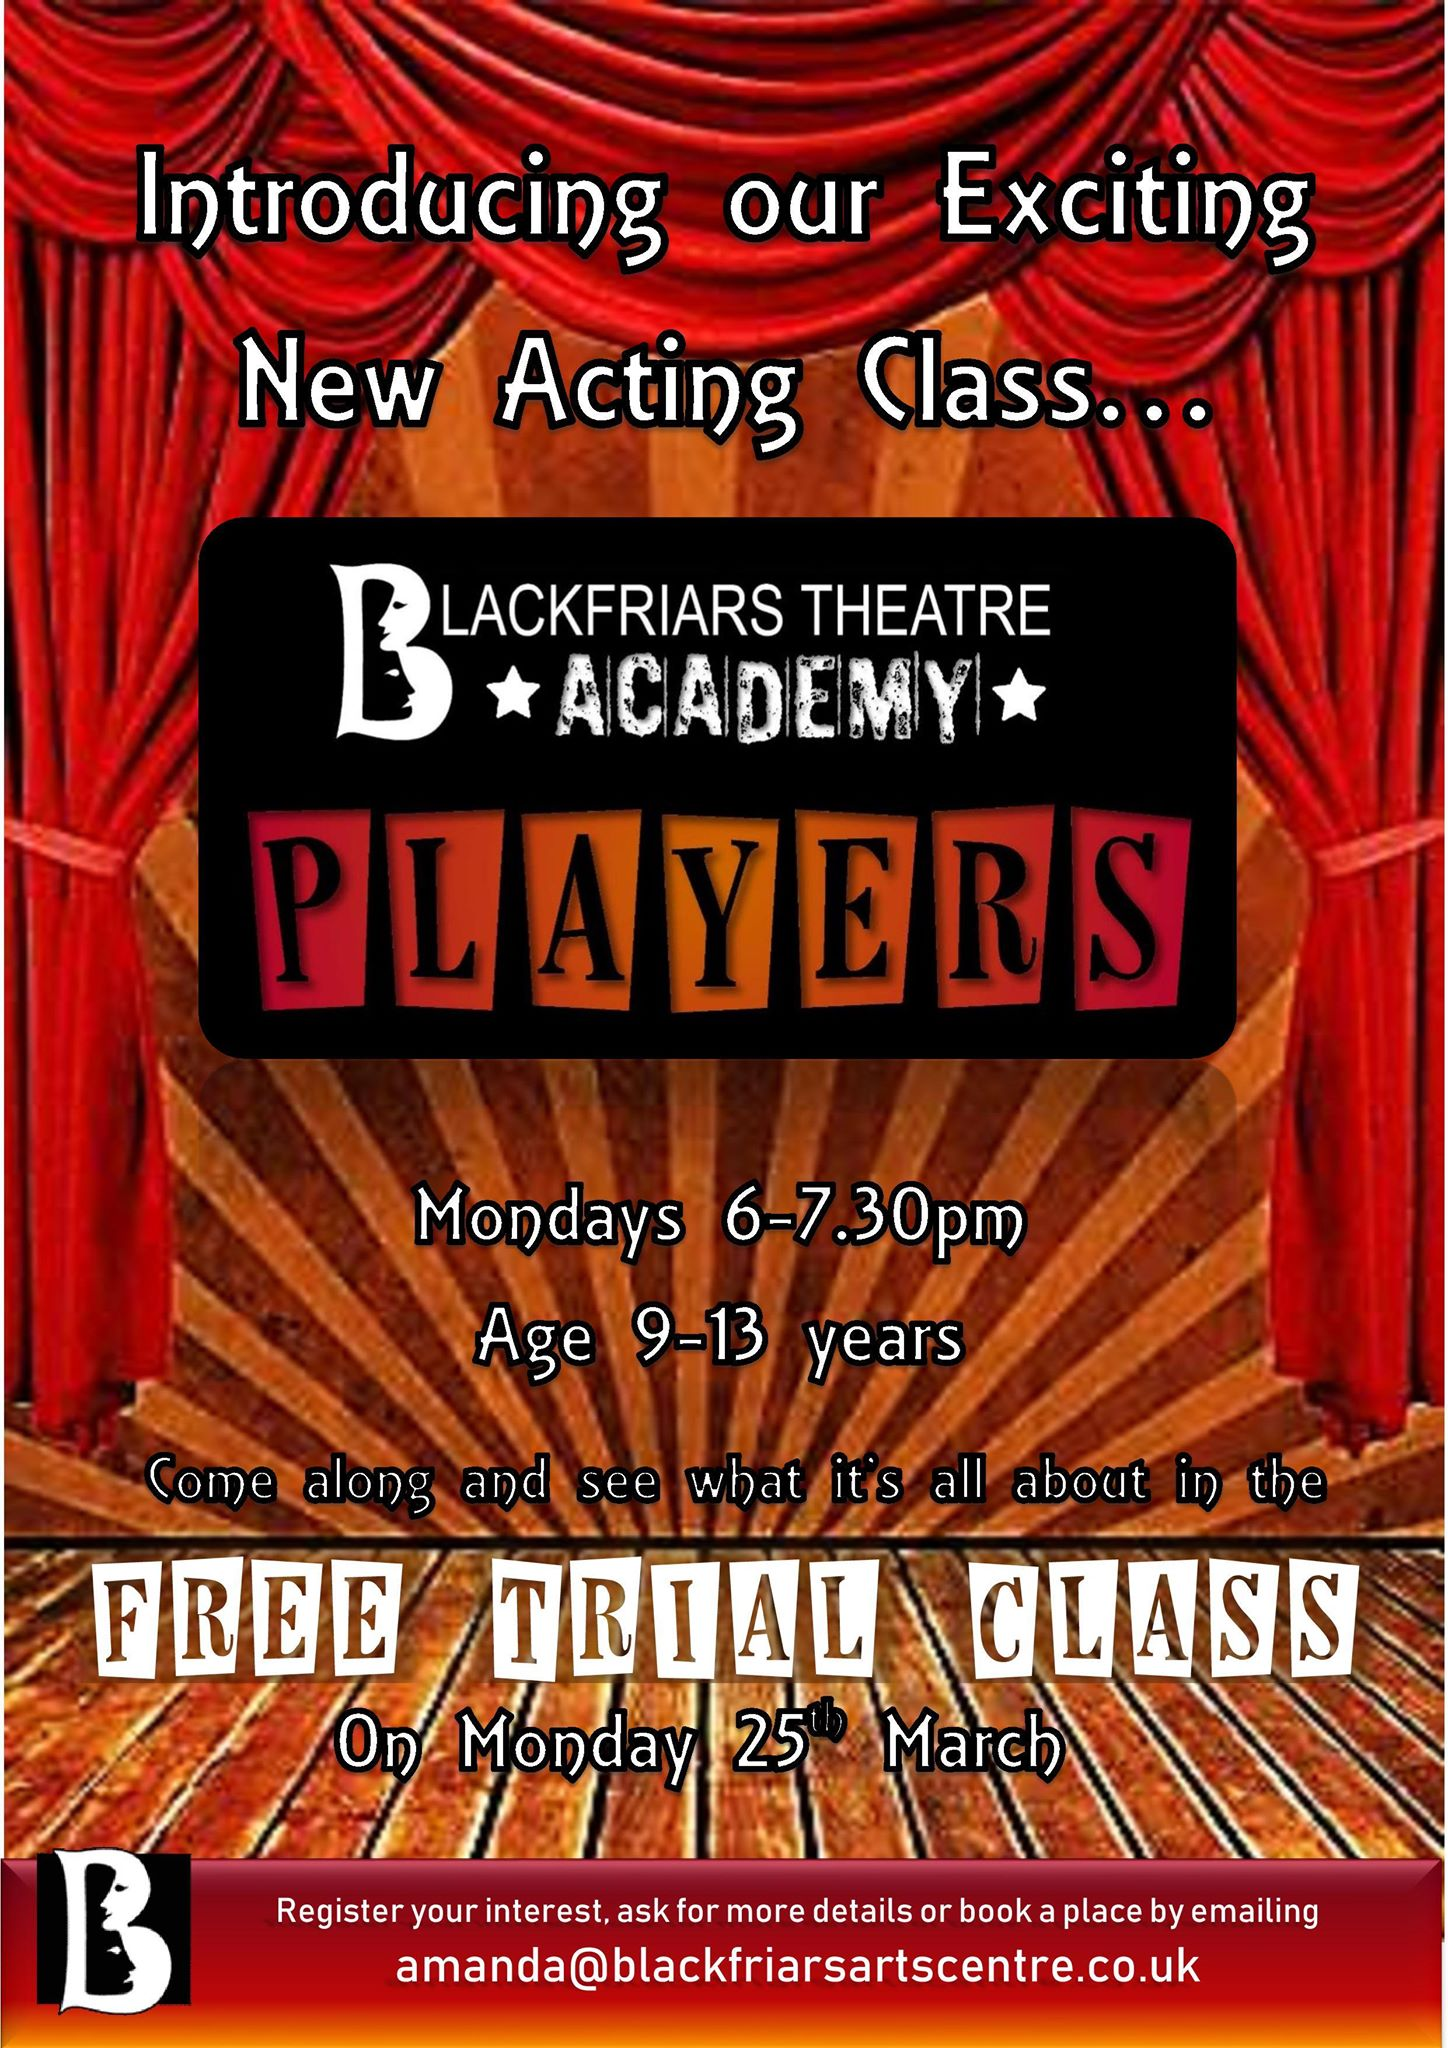 New acting class for Blackfriars Theatre Academy!